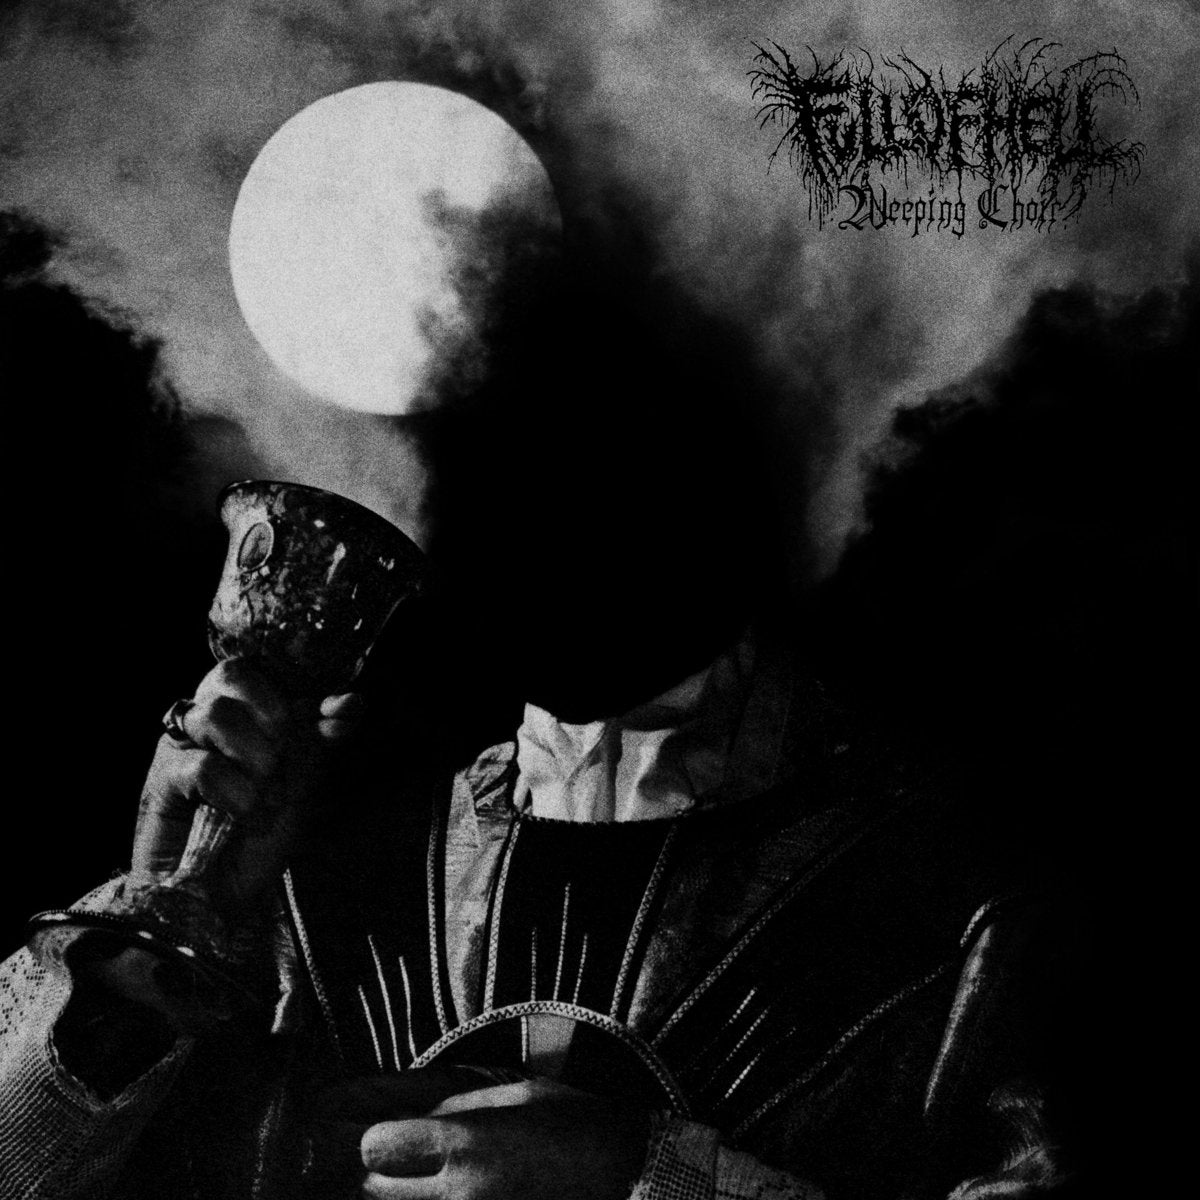 Full of Hell - Weeping Choir LP - Vinyl